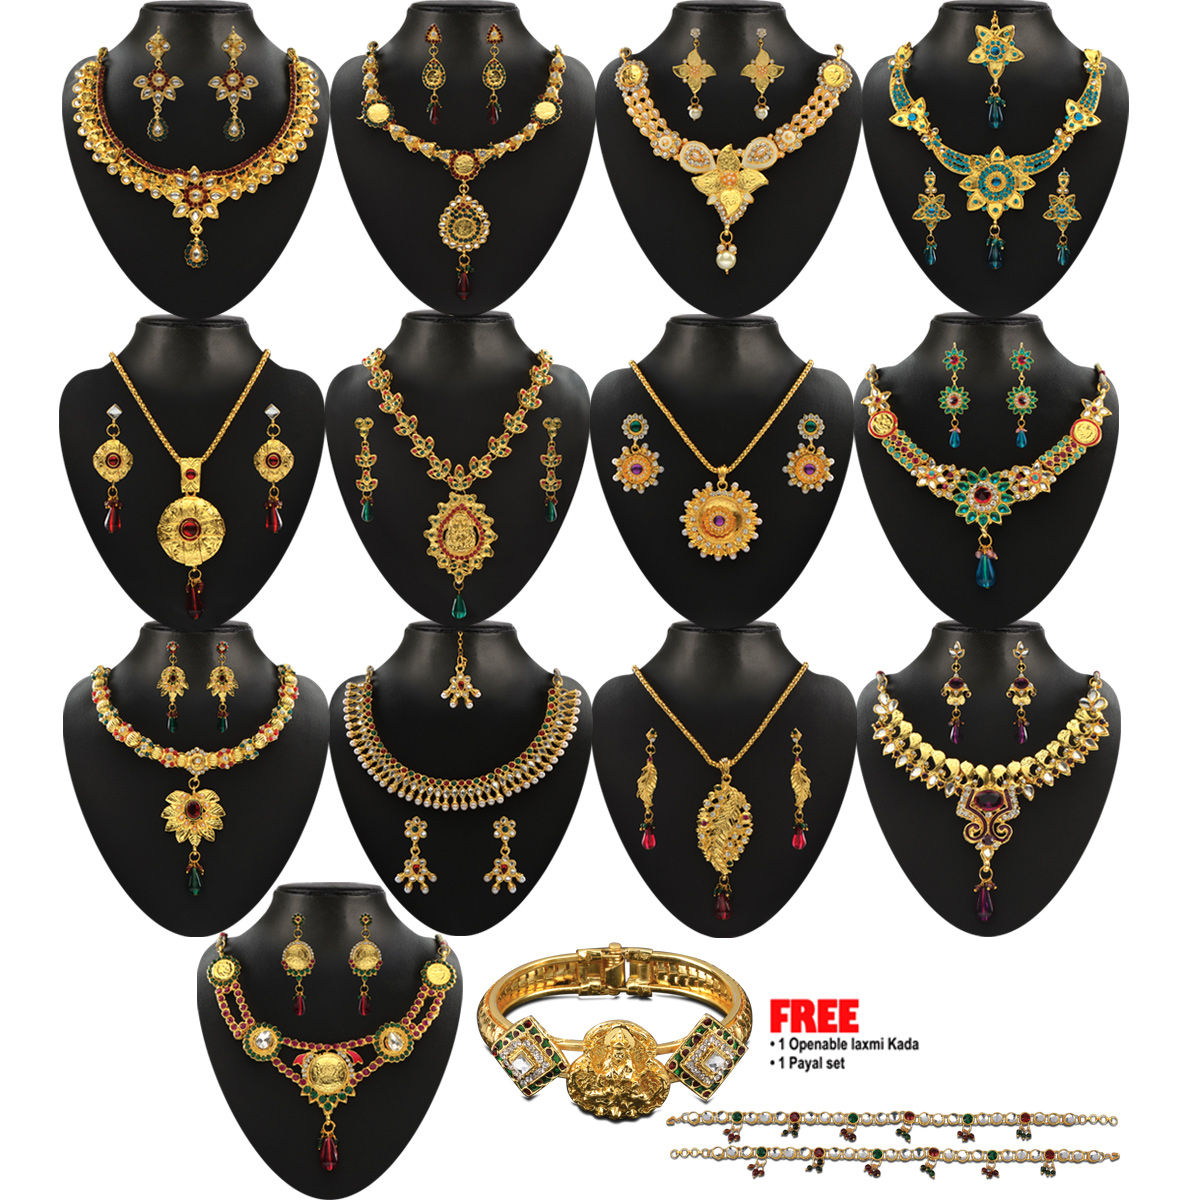 d1239a4394 Buy Shubhalaxmi 1 Gram Gold Plated 13 Jewellery Set Online at Best Price in  India on Naaptol.com